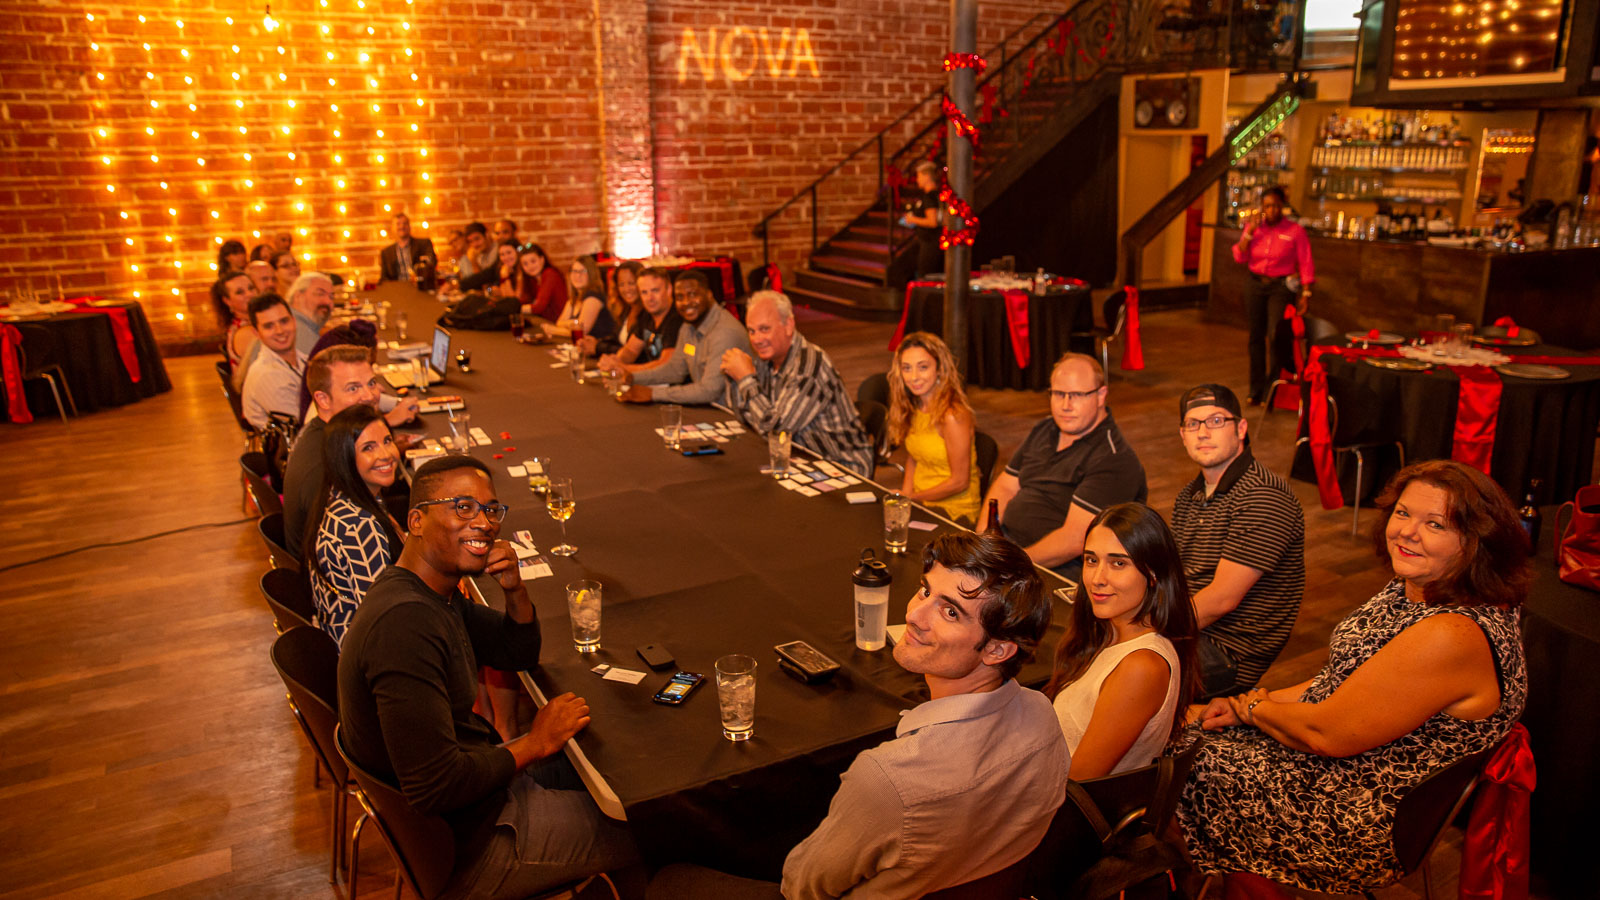 2019 Entrepreneur Social Club Thursday Nights at historic downtown St. Pete venue NOVA 535